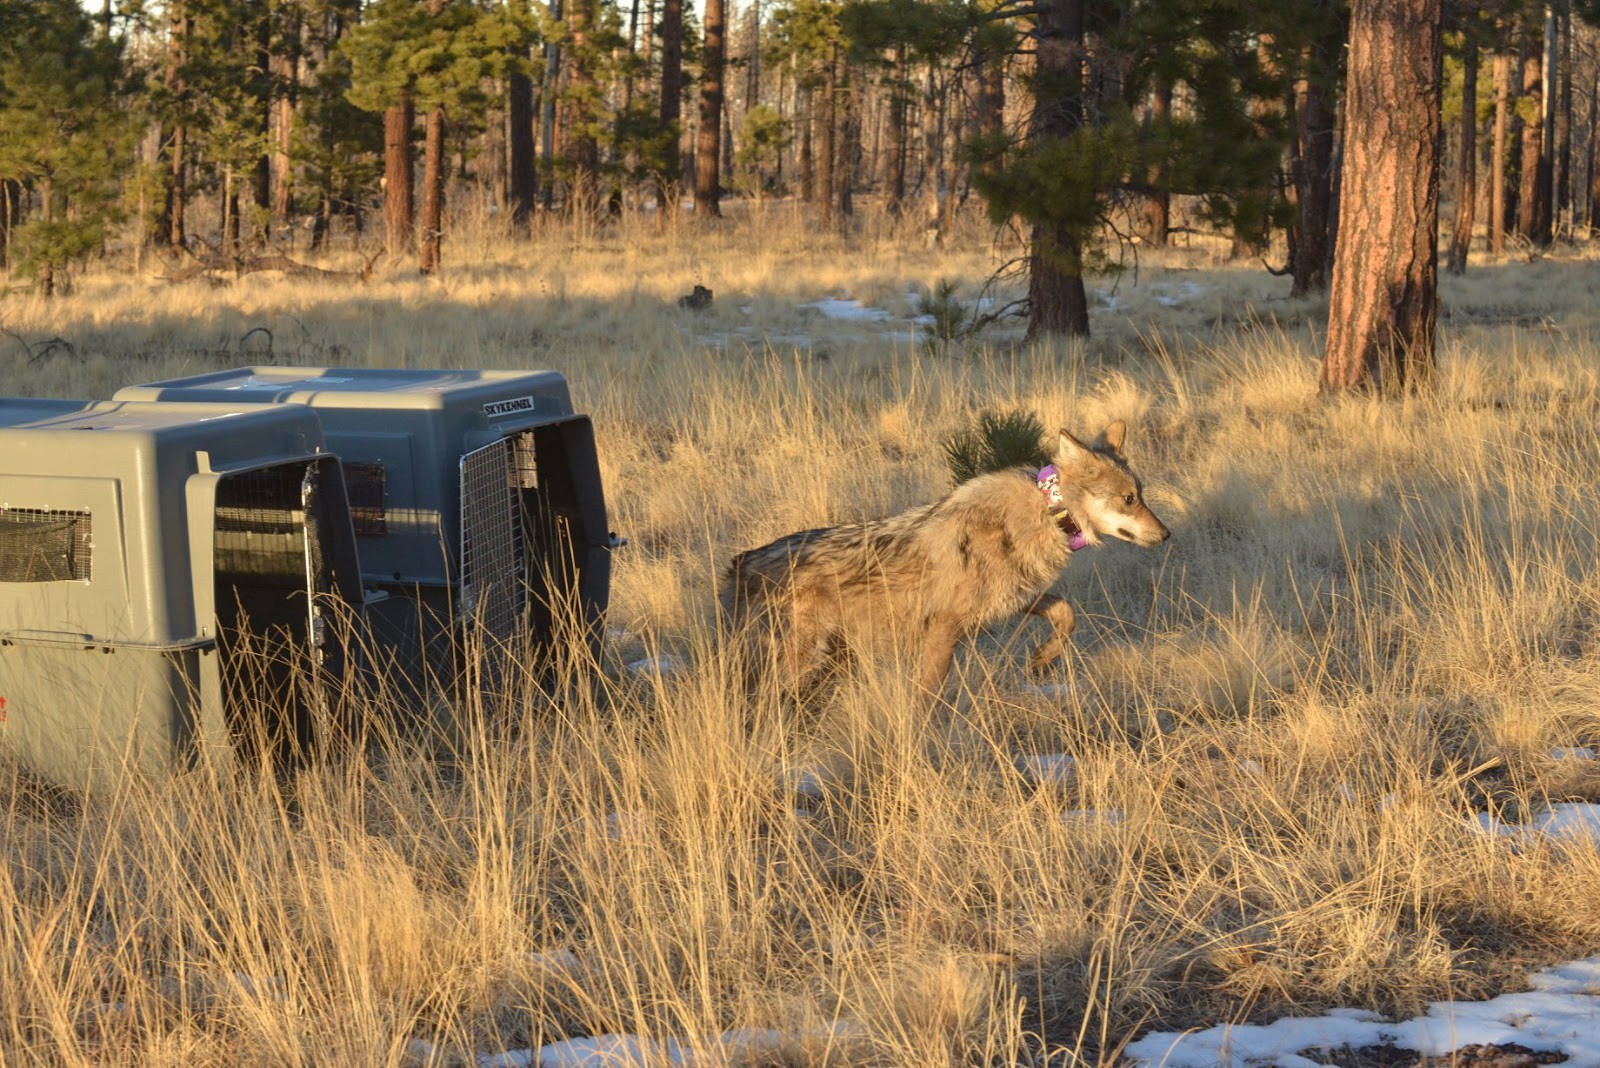 A wolf with a purple radio collar runs out of a dark green crate during a release.